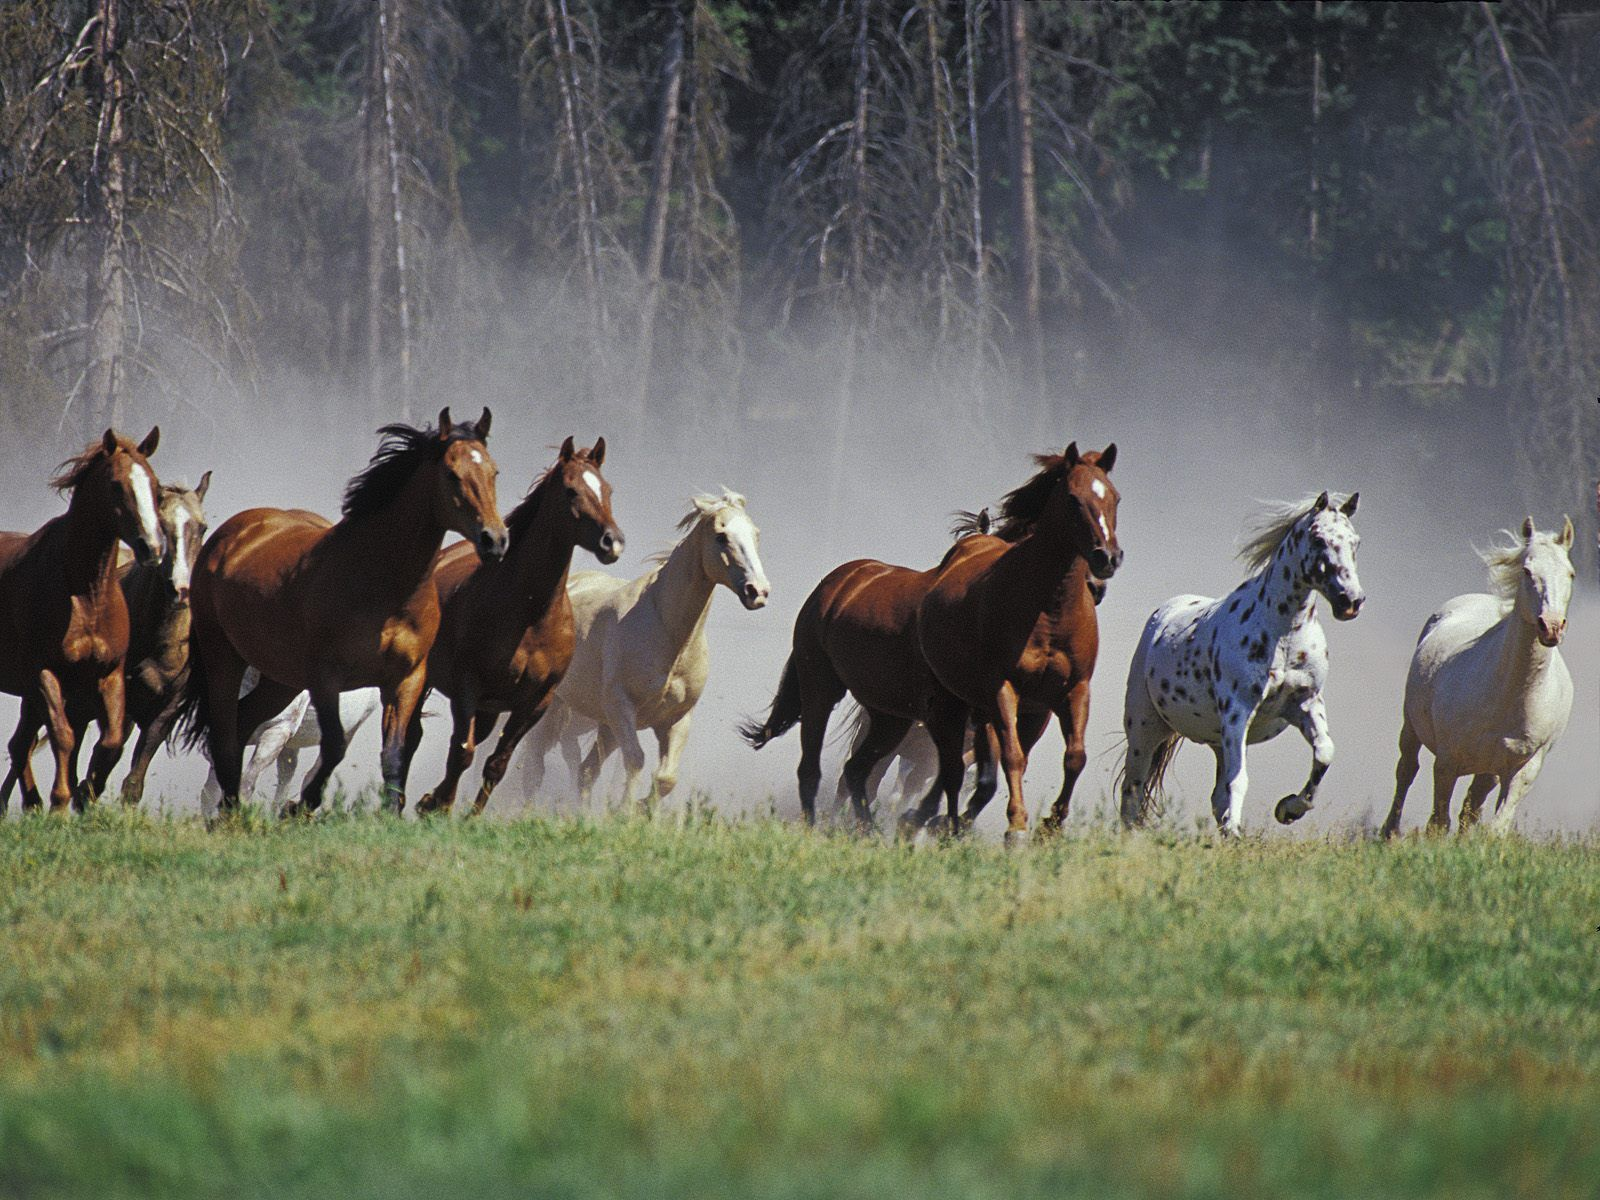 2 running horse clouds   Horse Wallpapers   Desktop Wallpapers - Page 2